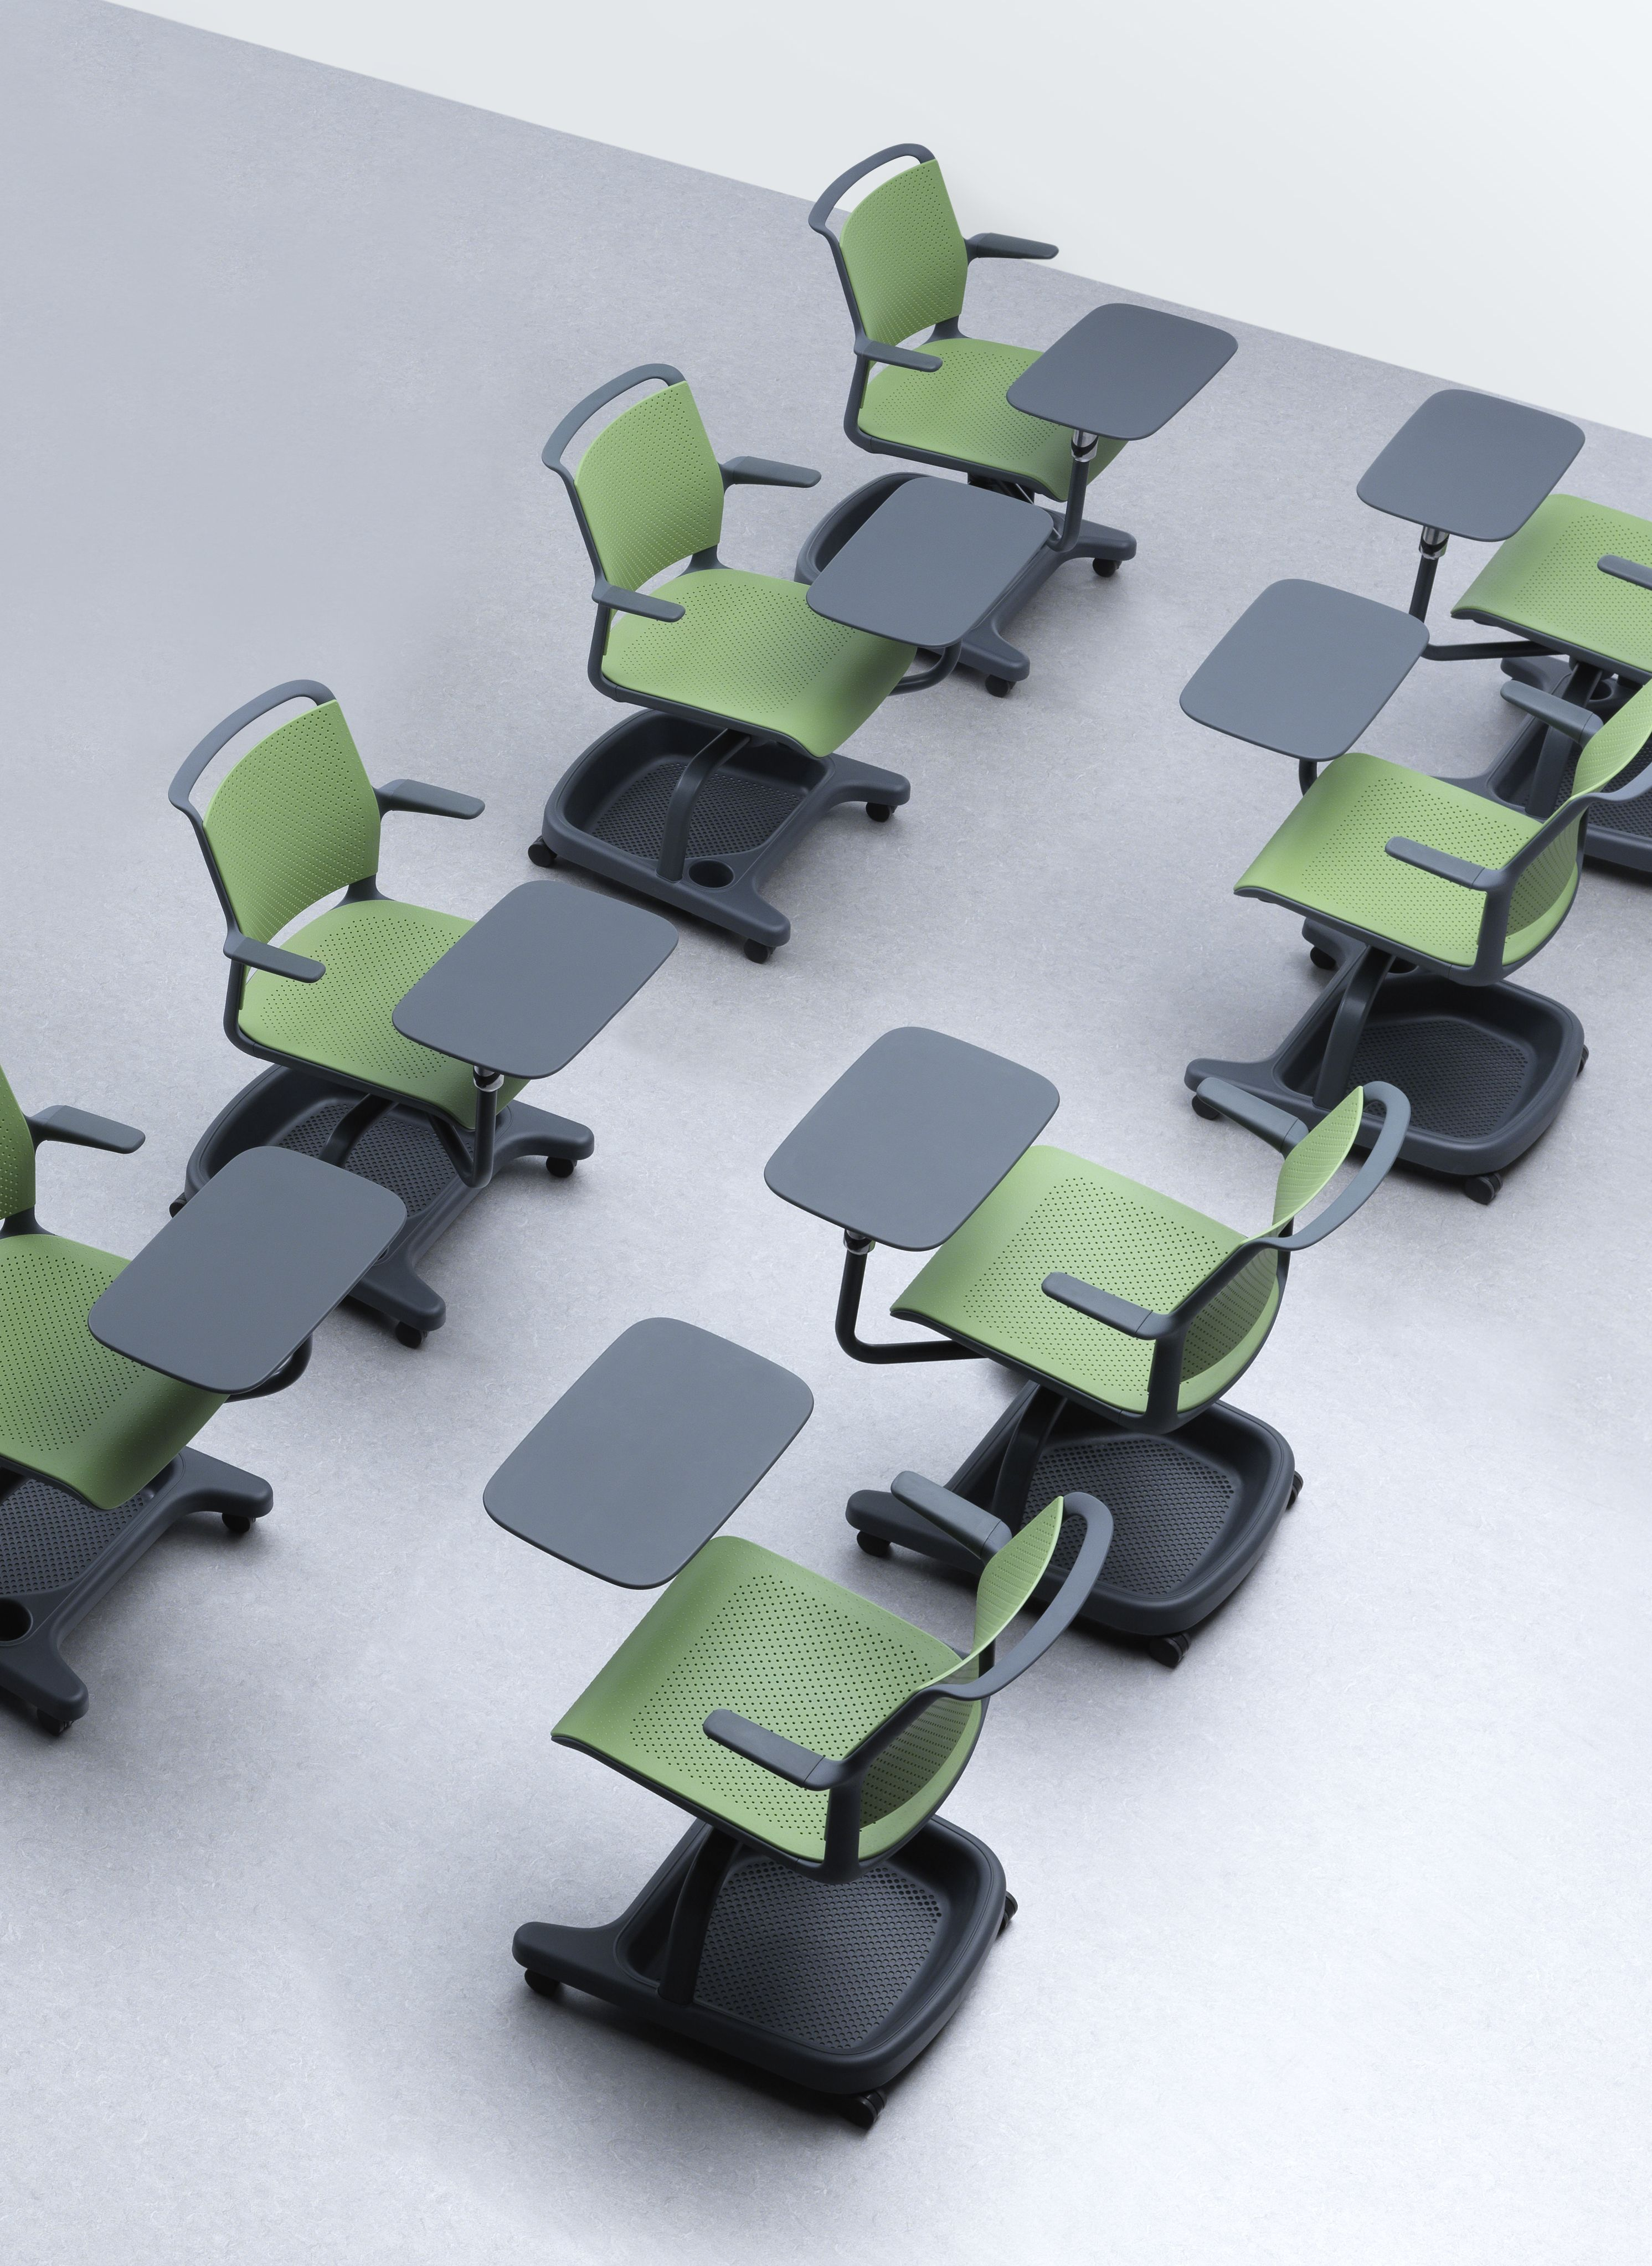 Superb Senator Adlib Chair 360 Degree Left To Right Tablet Chair Alphanode Cool Chair Designs And Ideas Alphanodeonline